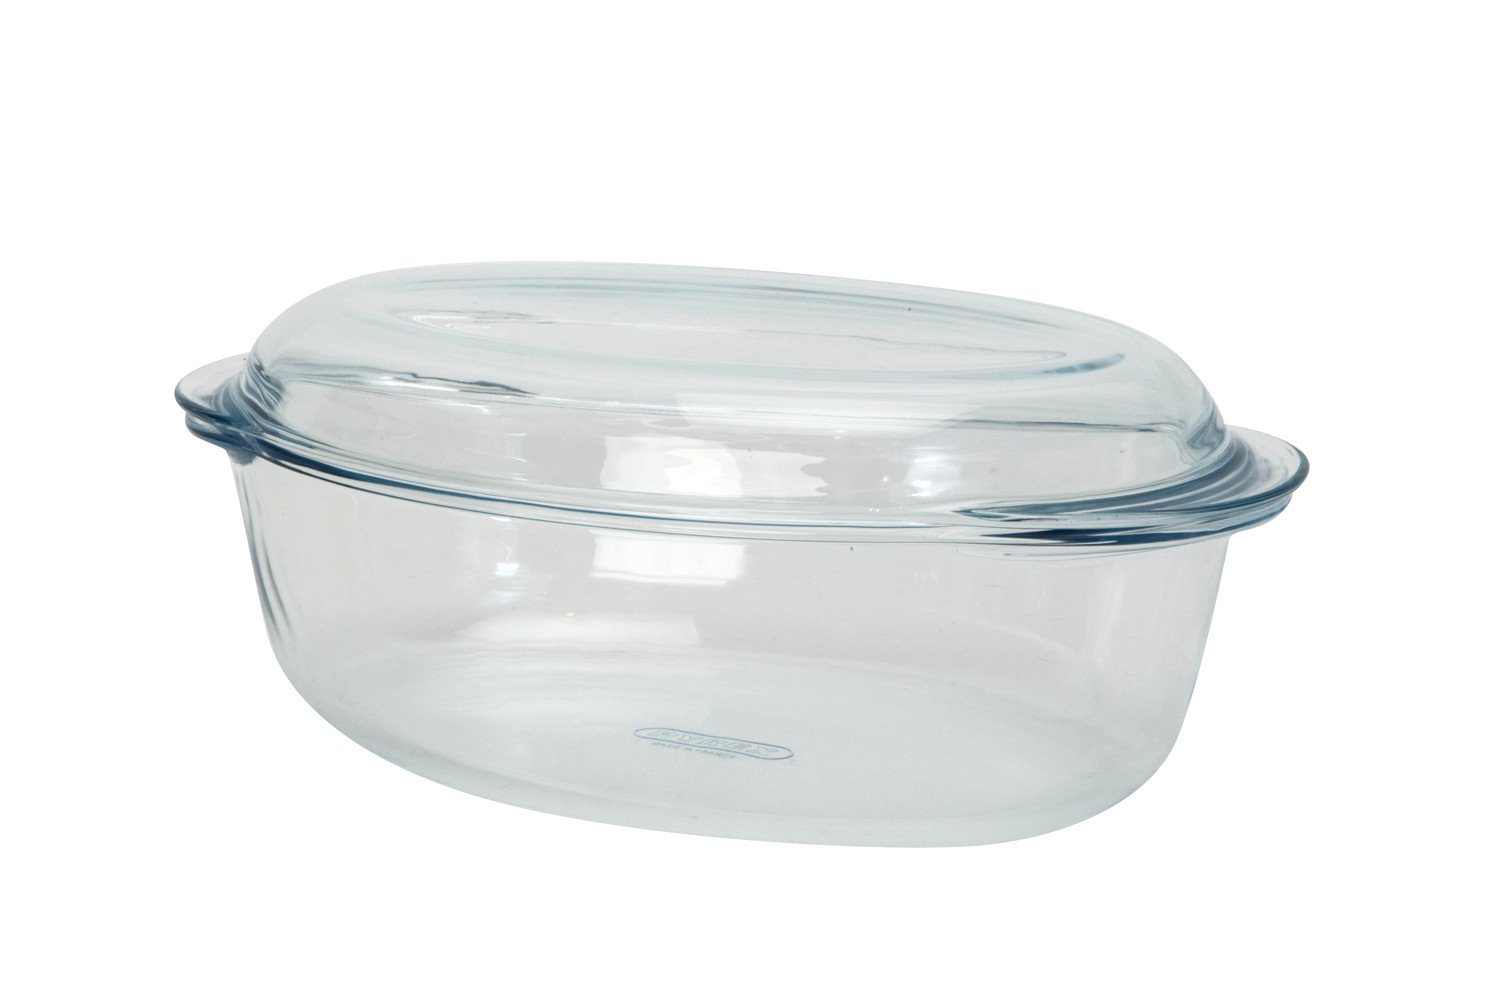 Утятница Pyrex 4л, 459AA